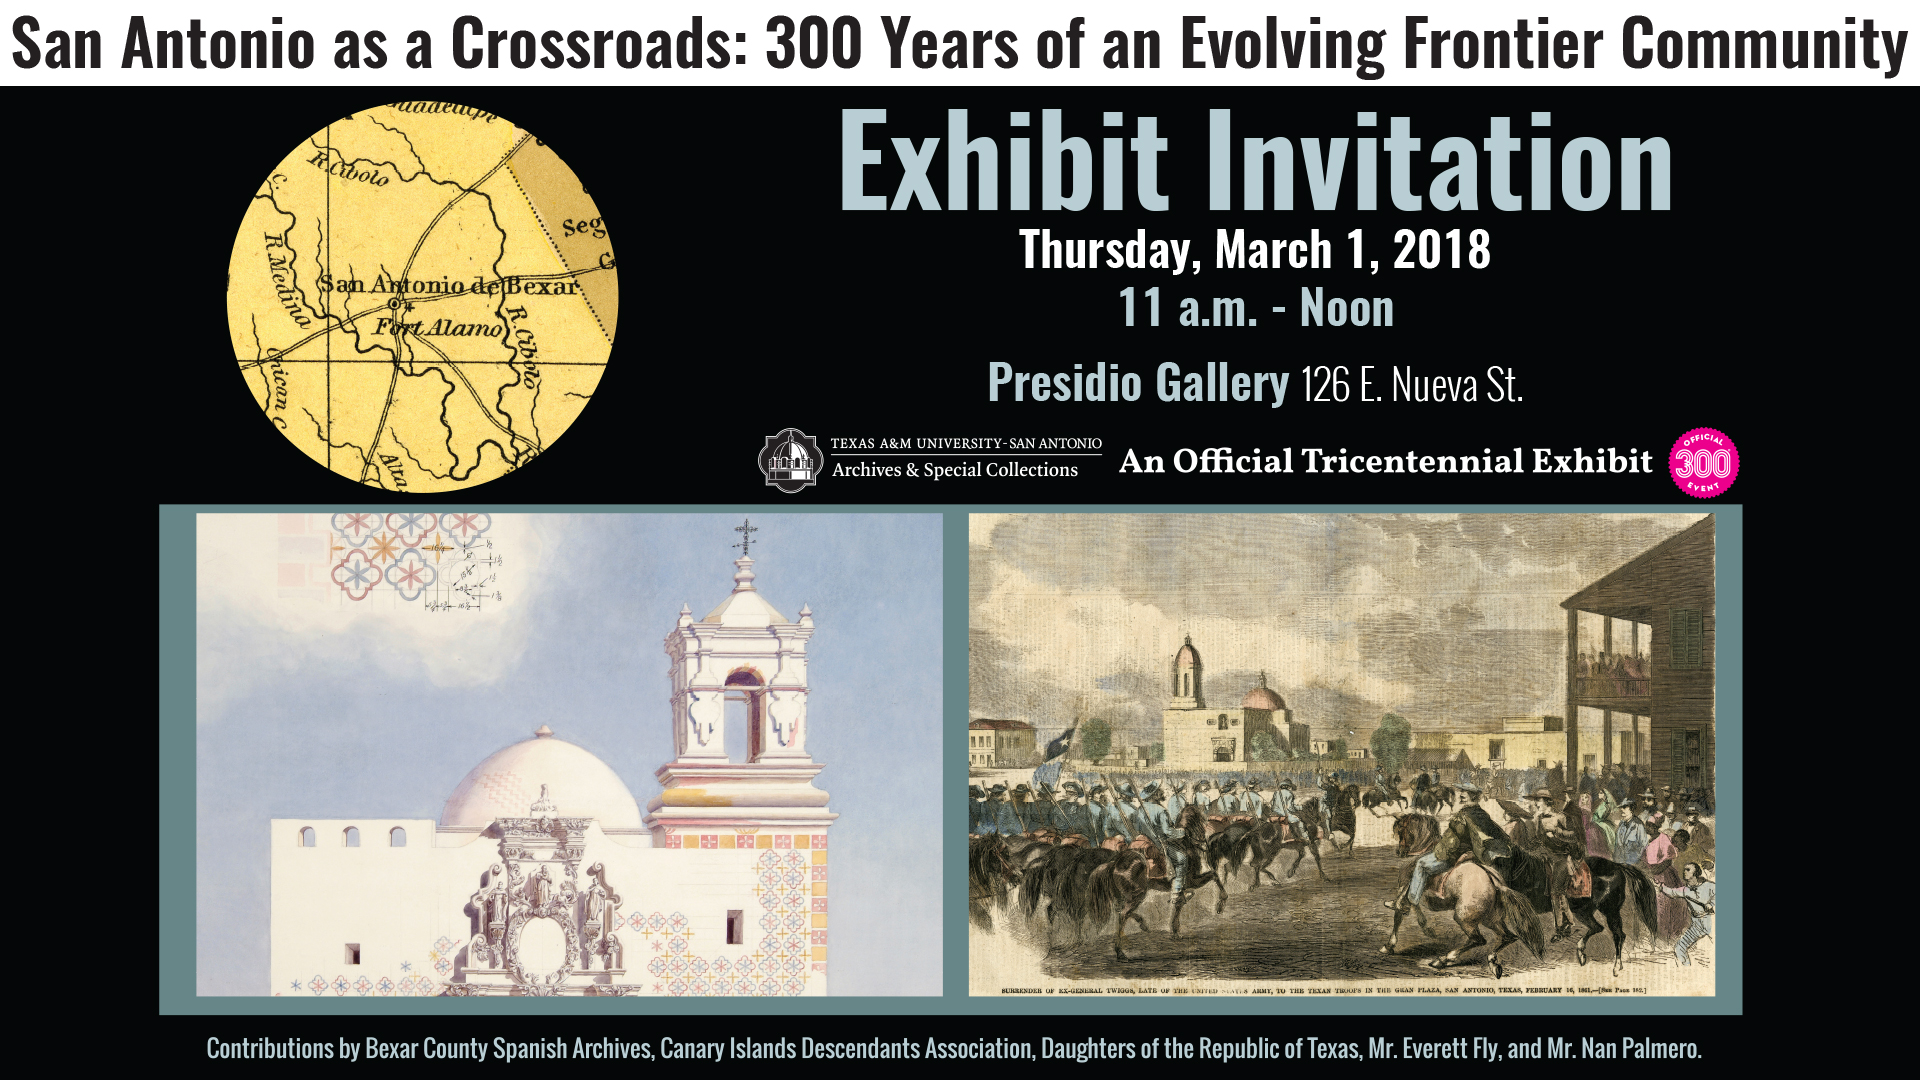 San Antonio as a Crossroads: 300 Years of an Evolving Frontier Community Kickoff Event